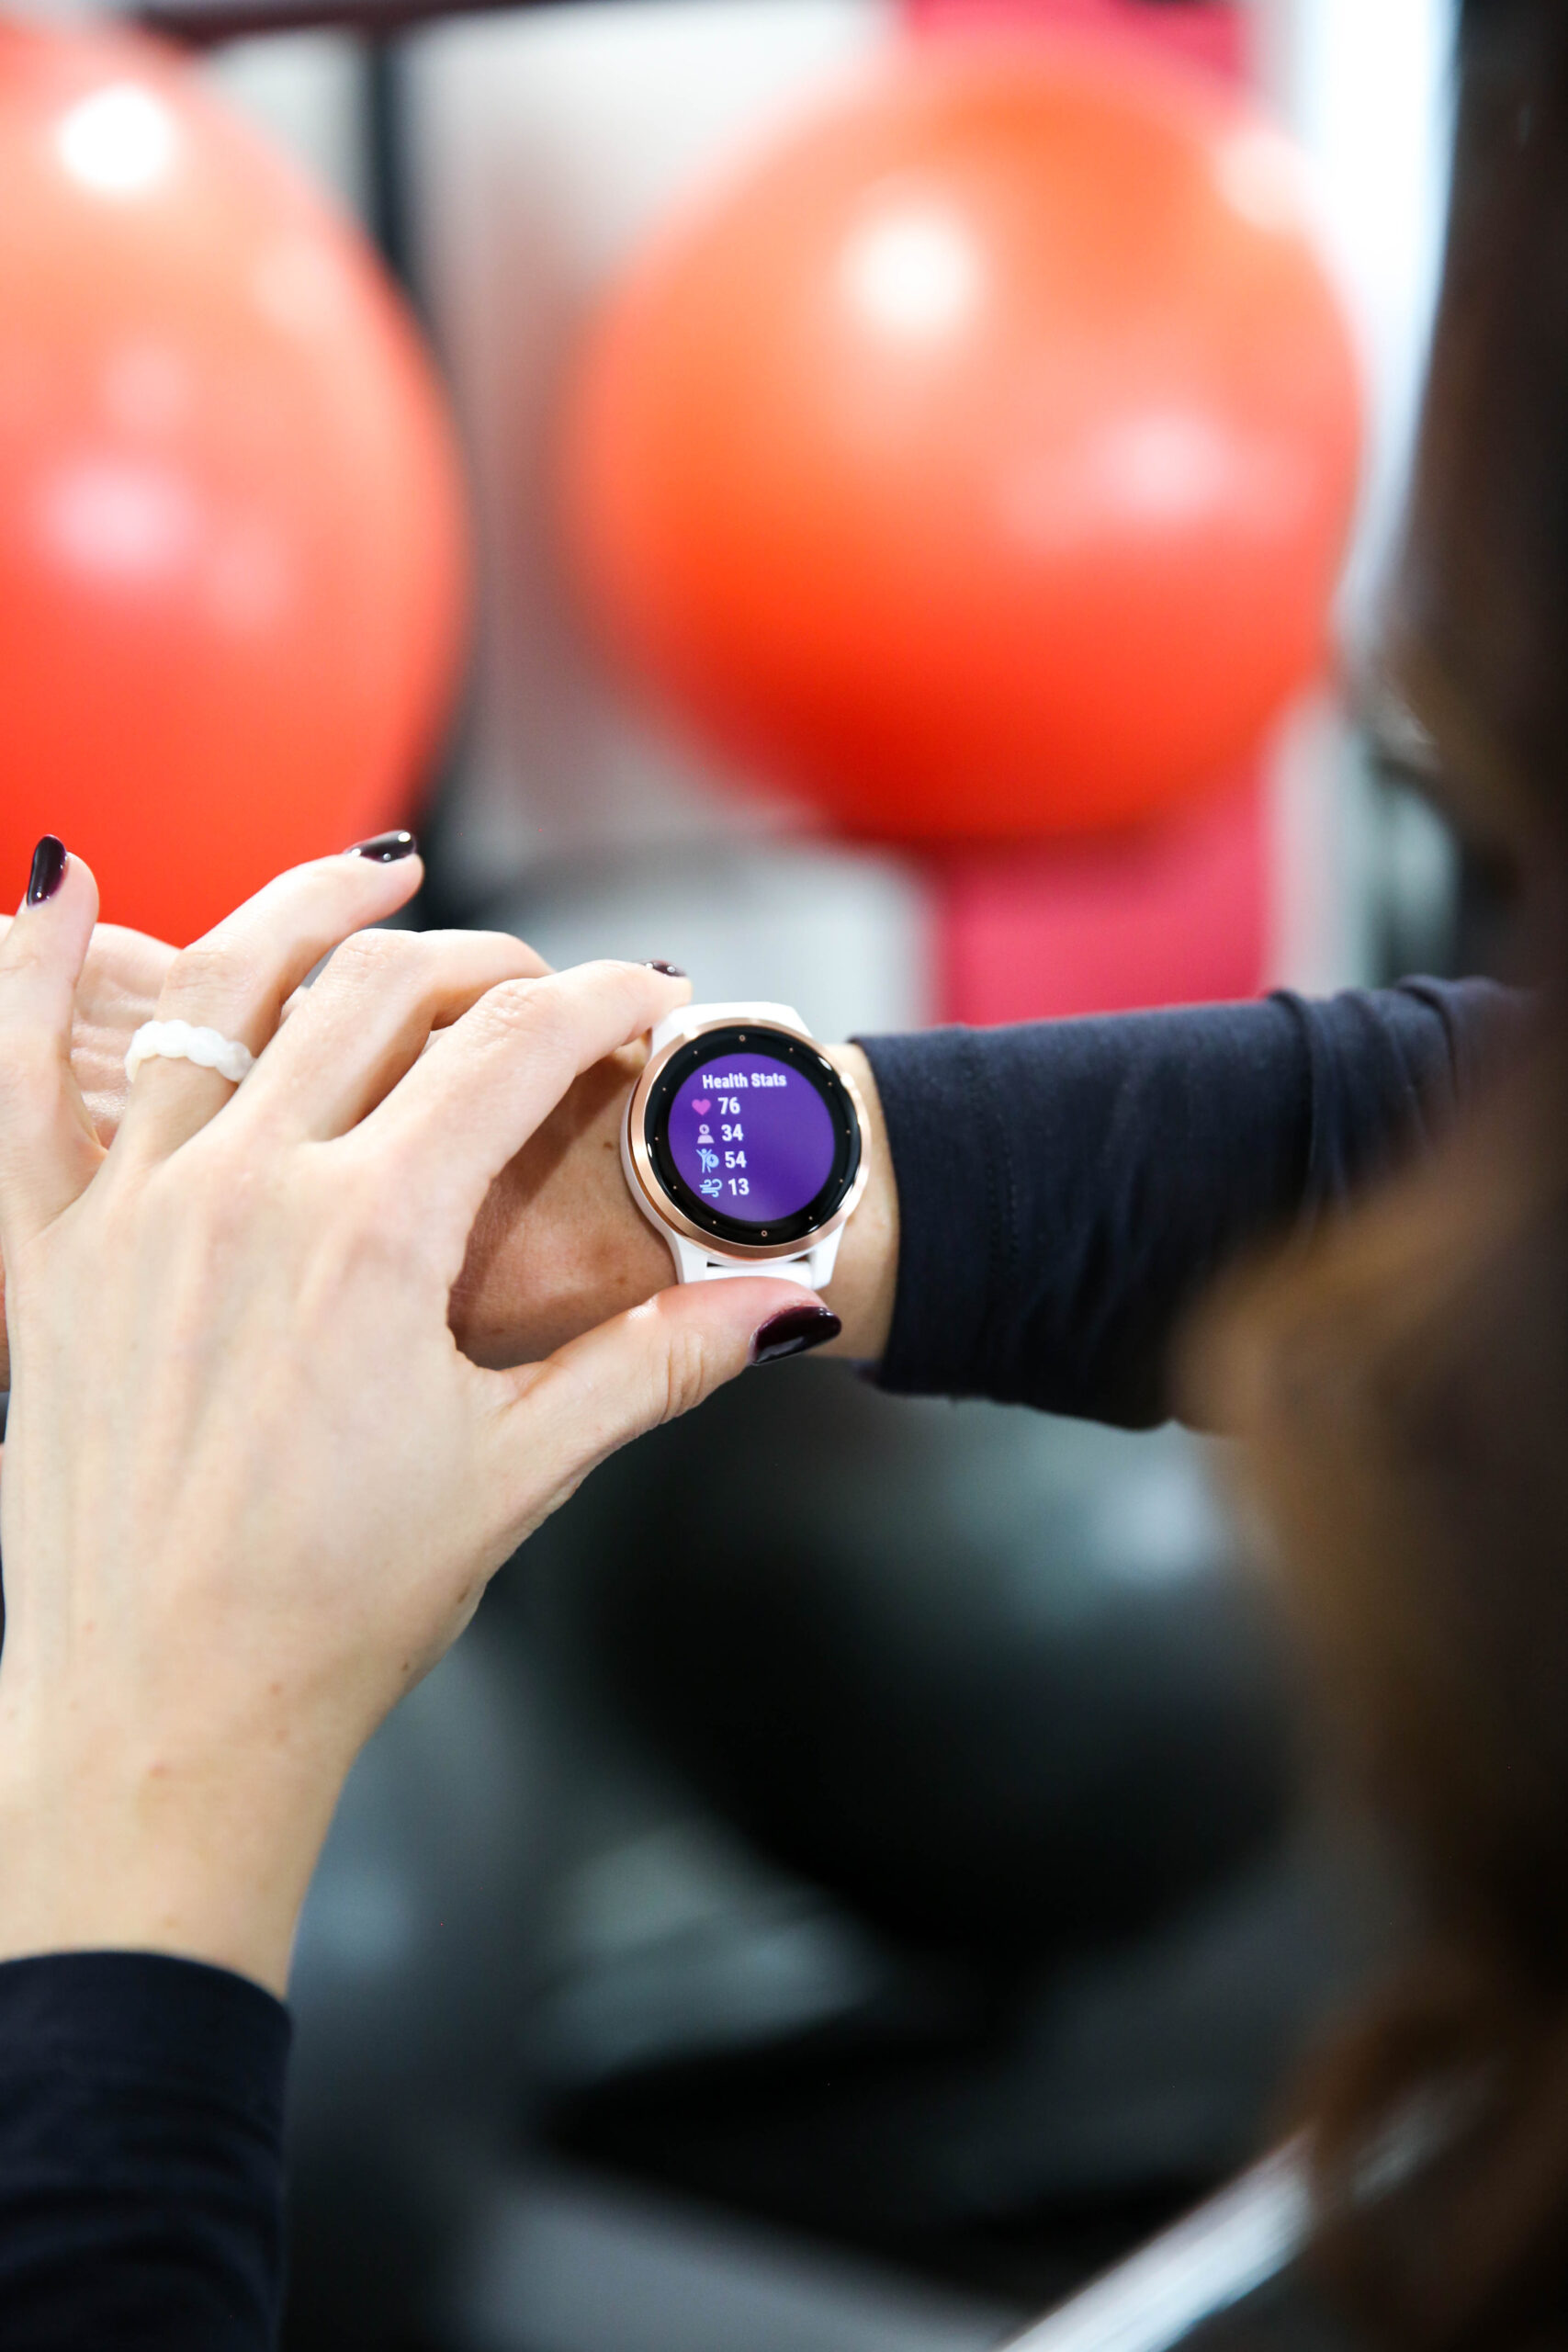 The Most Stylish Smartwatch On The Market